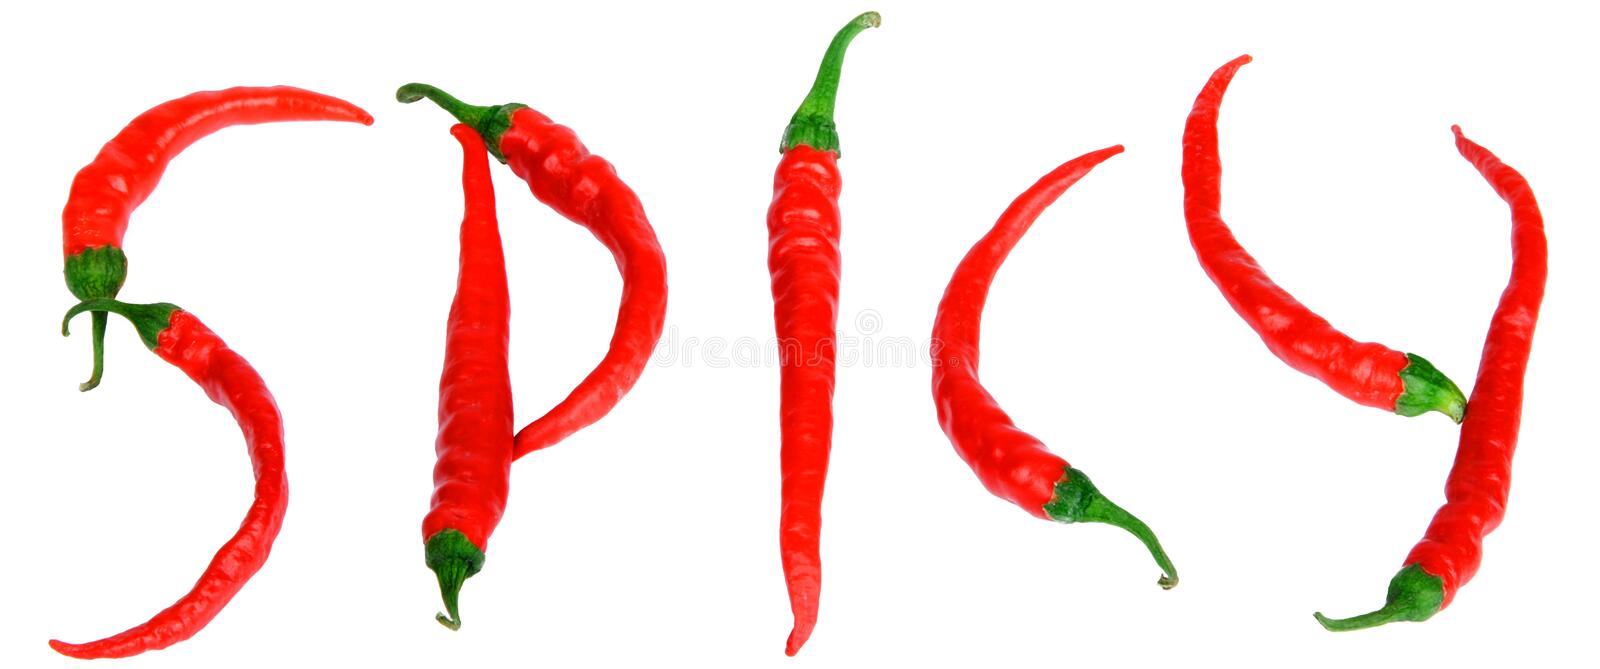 Red hot spicy peppers. Create word on white background spicy royalty free stock photo